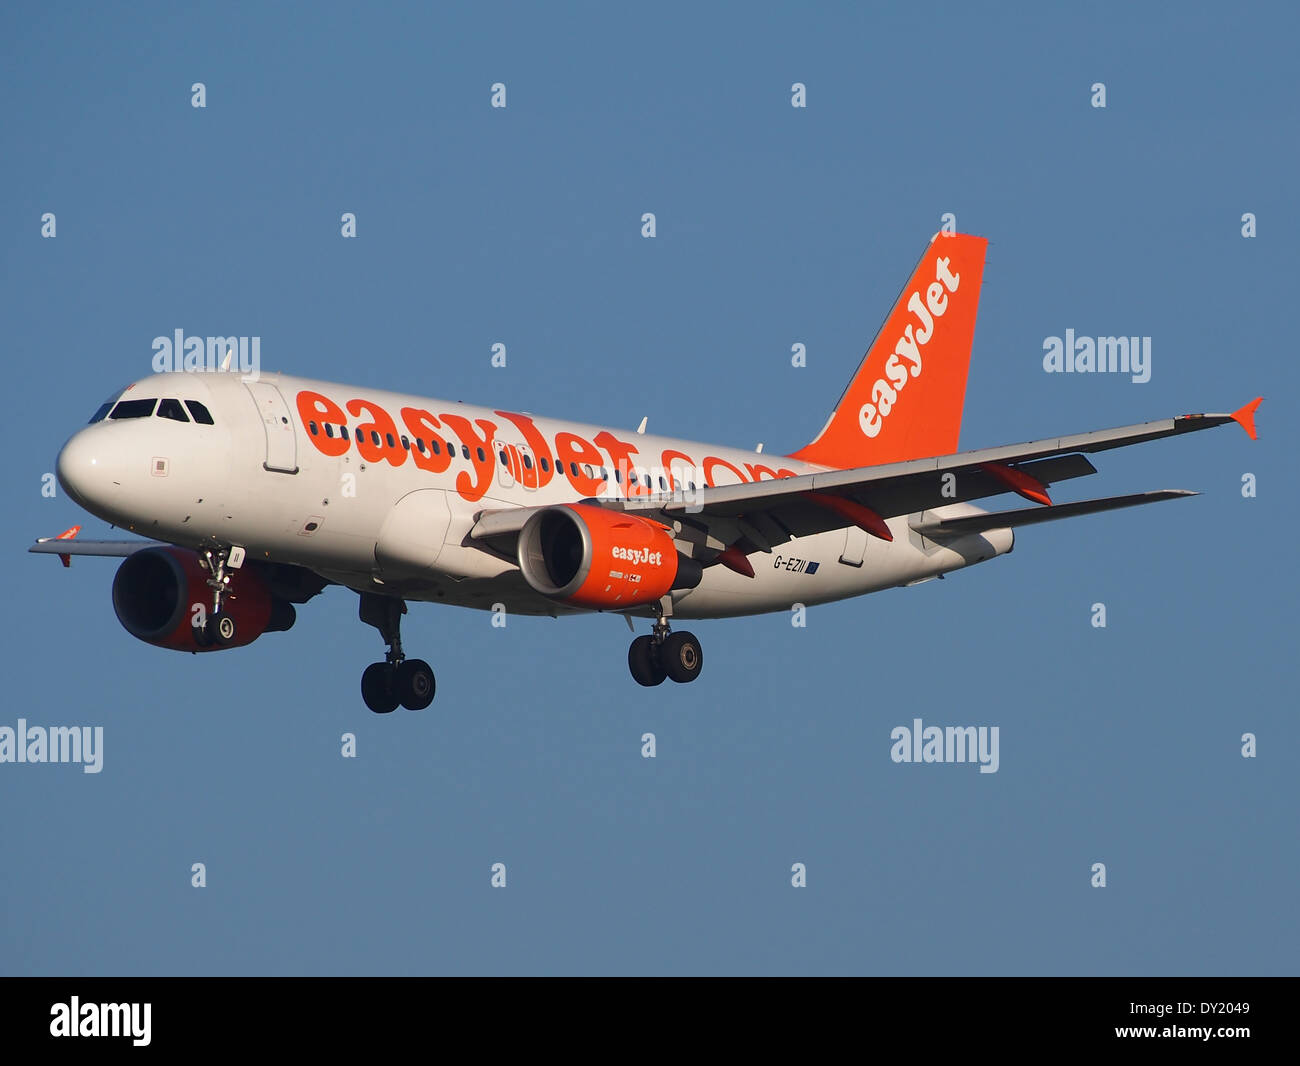 G-EZII easyJet Airbus A319-111 - cn 2471, AMS Amsterdam (Schiphol), pic1 - Stock Image